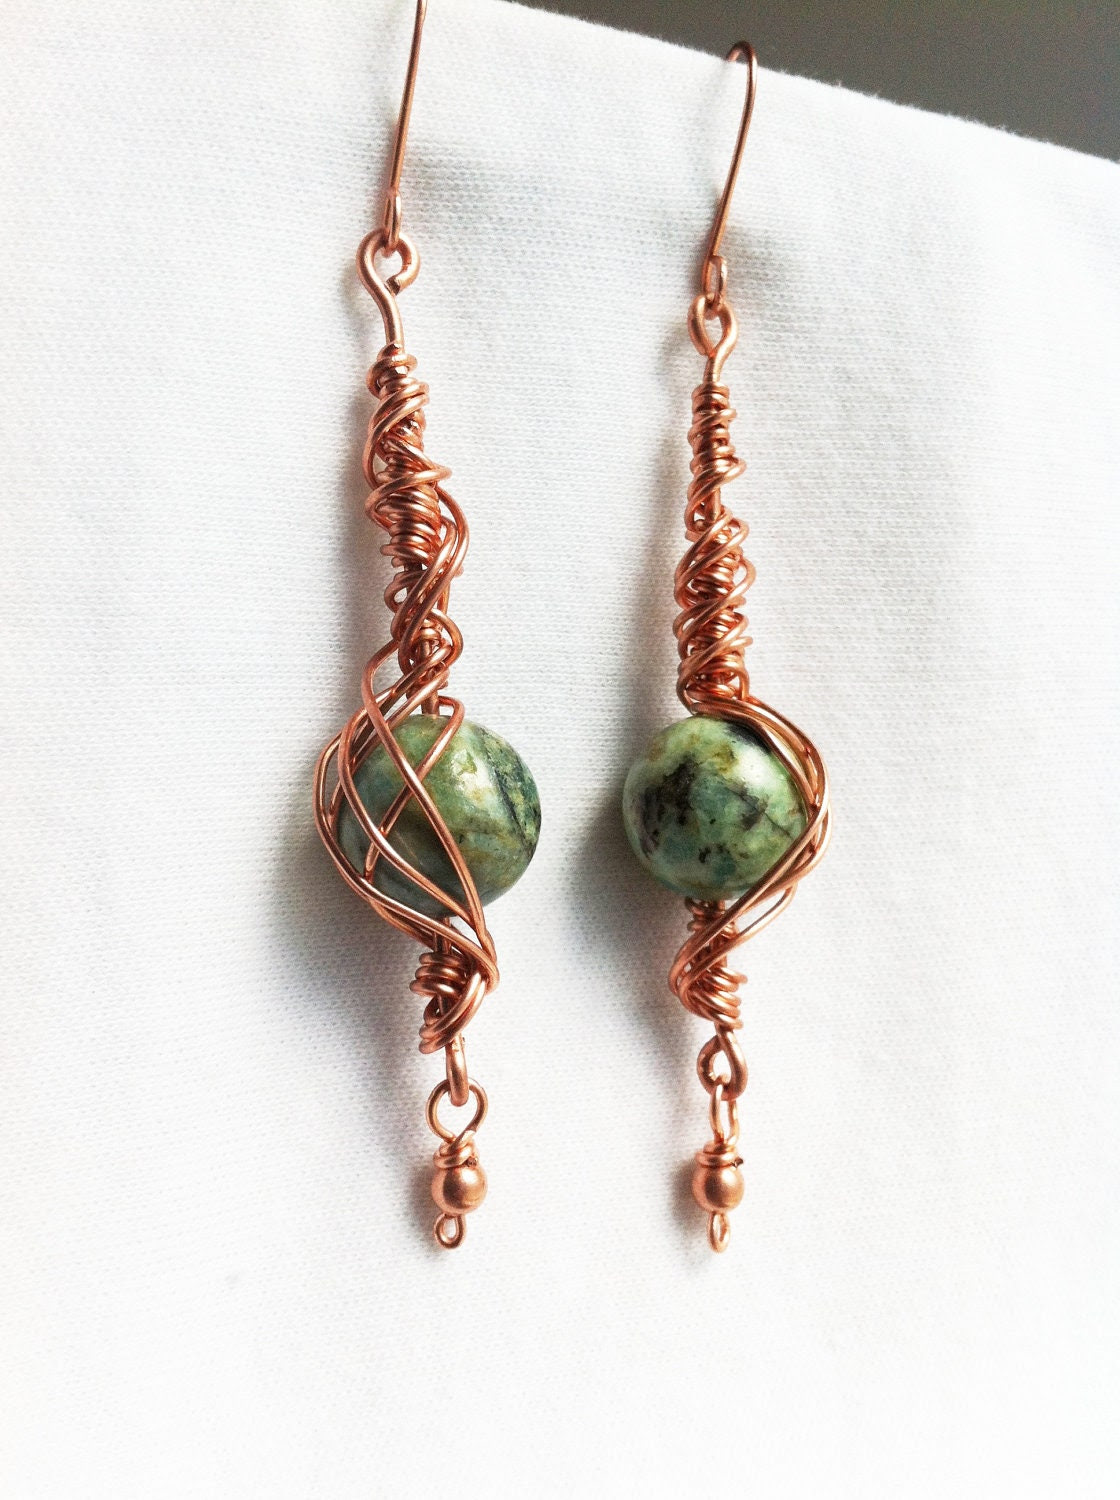 NEPTUNE'S SONG - Chrysocolla Copper Wrapped Earrings